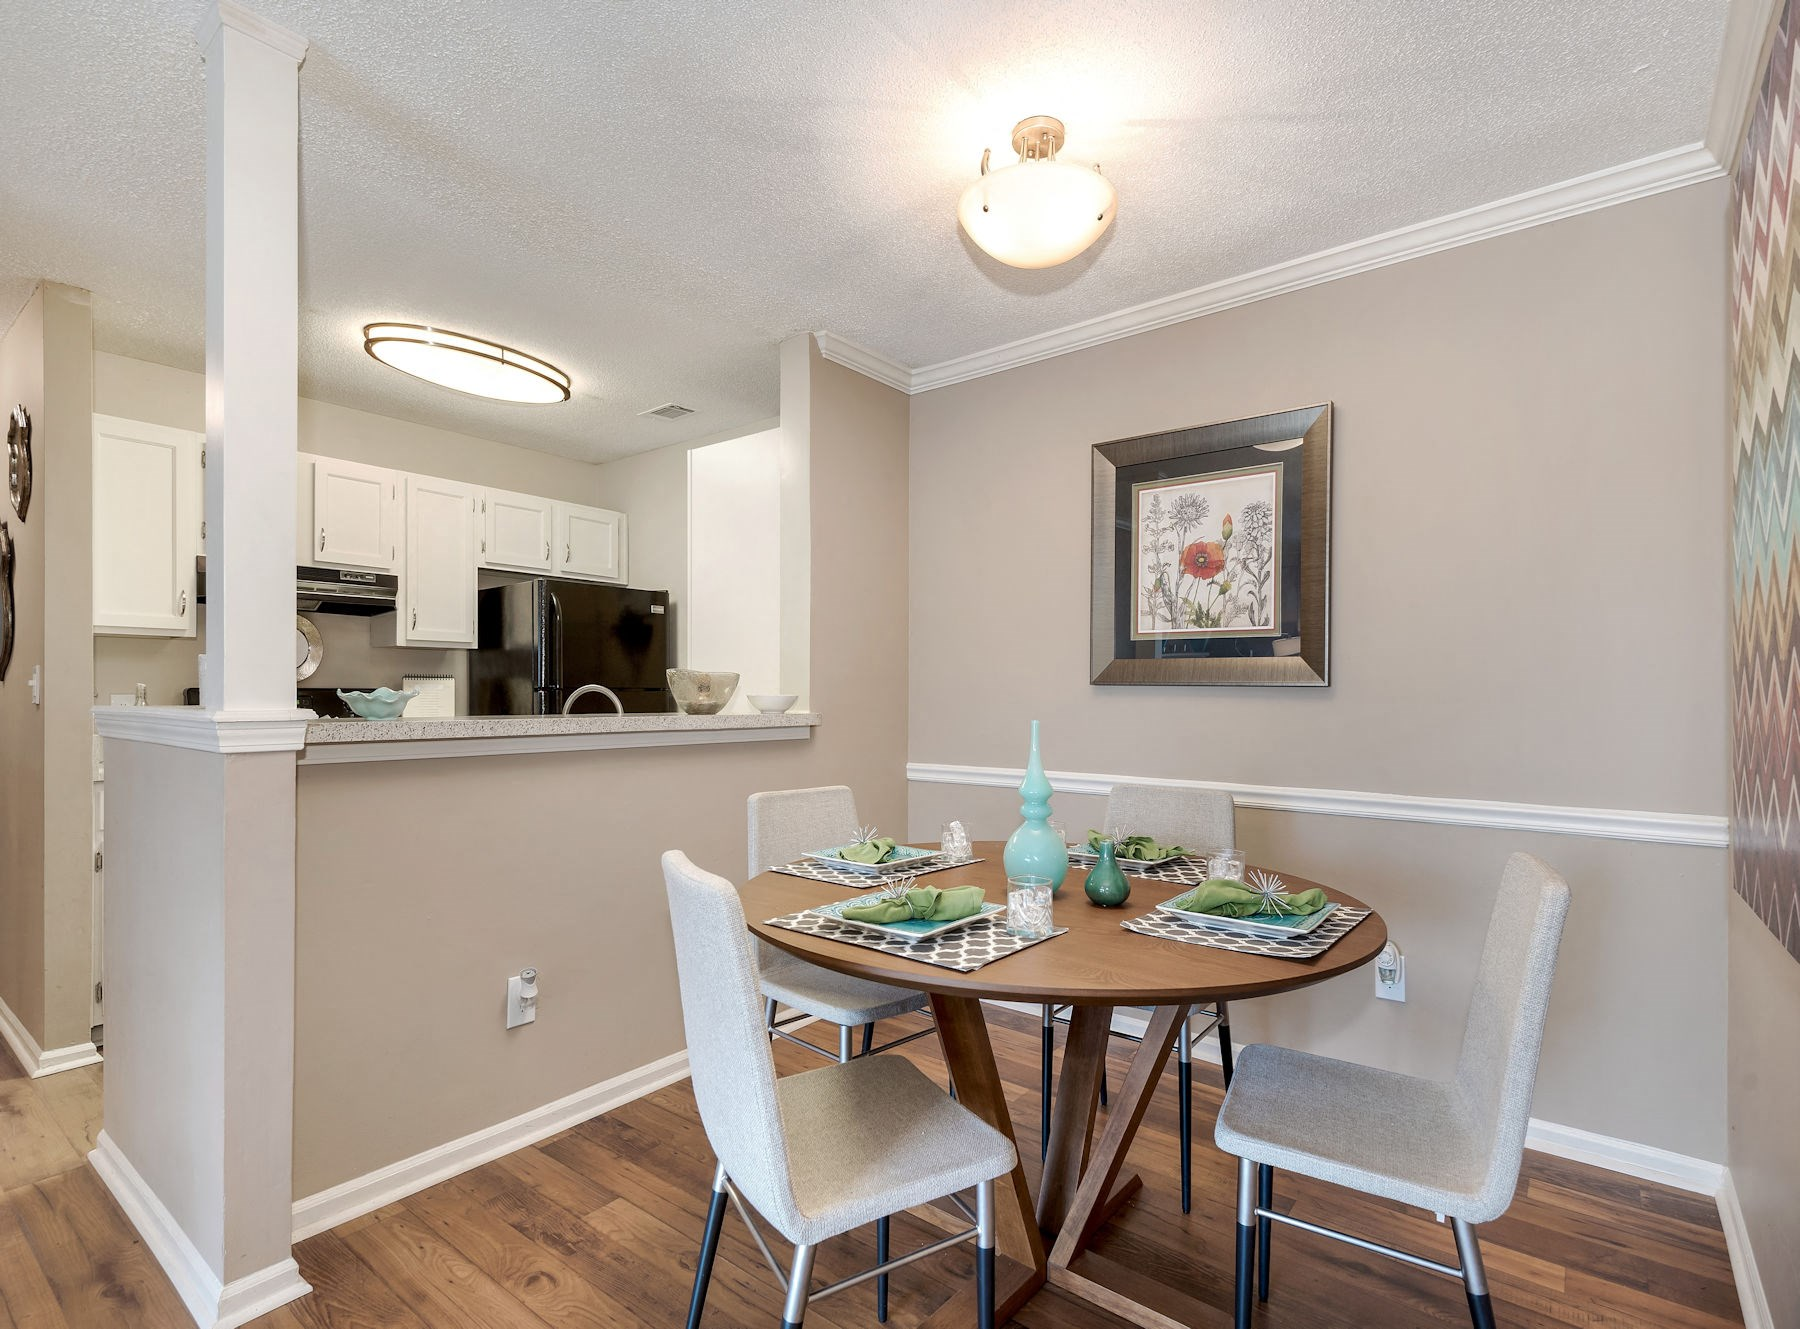 Model Dinning Area With Wood Style Floors